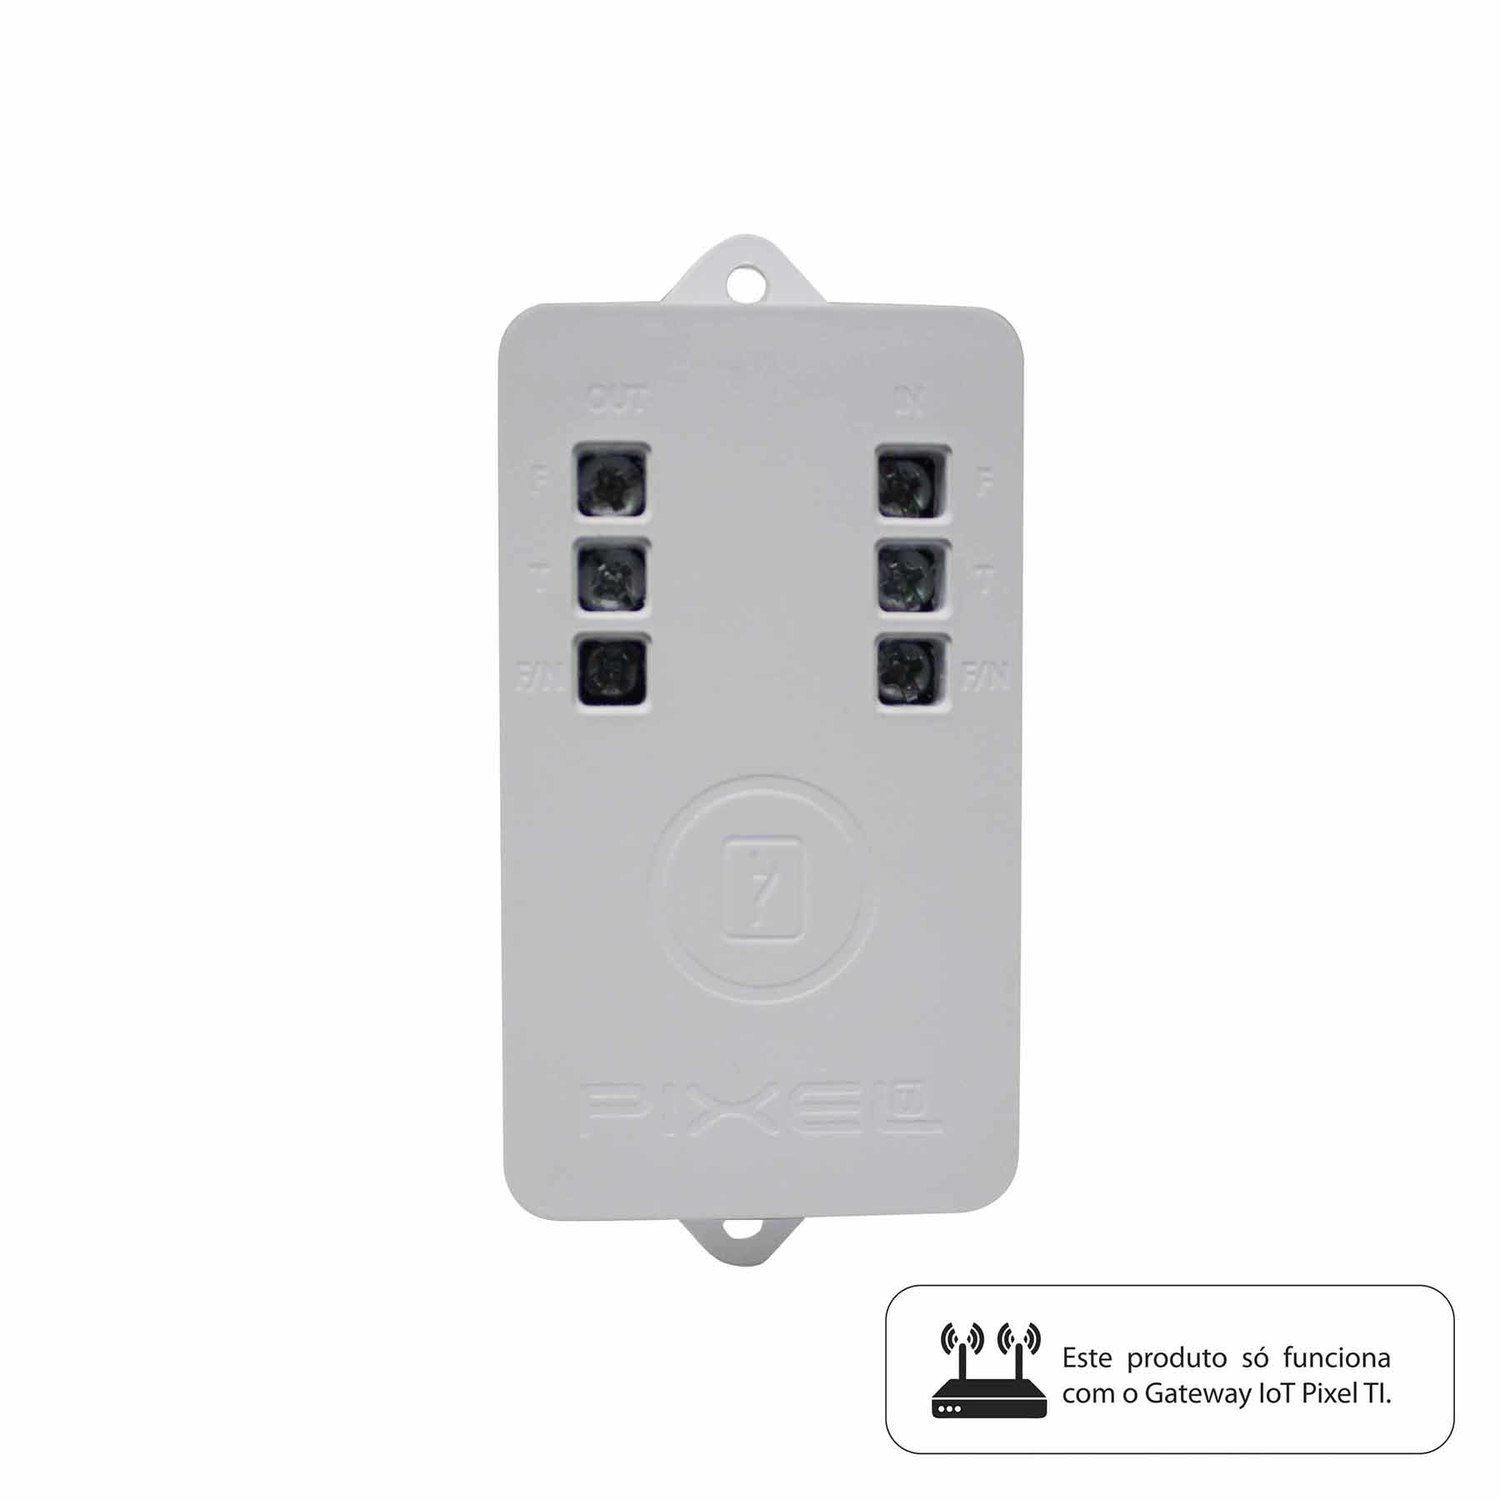 Smart Plug Plus - Pixel TI - C020LOAD